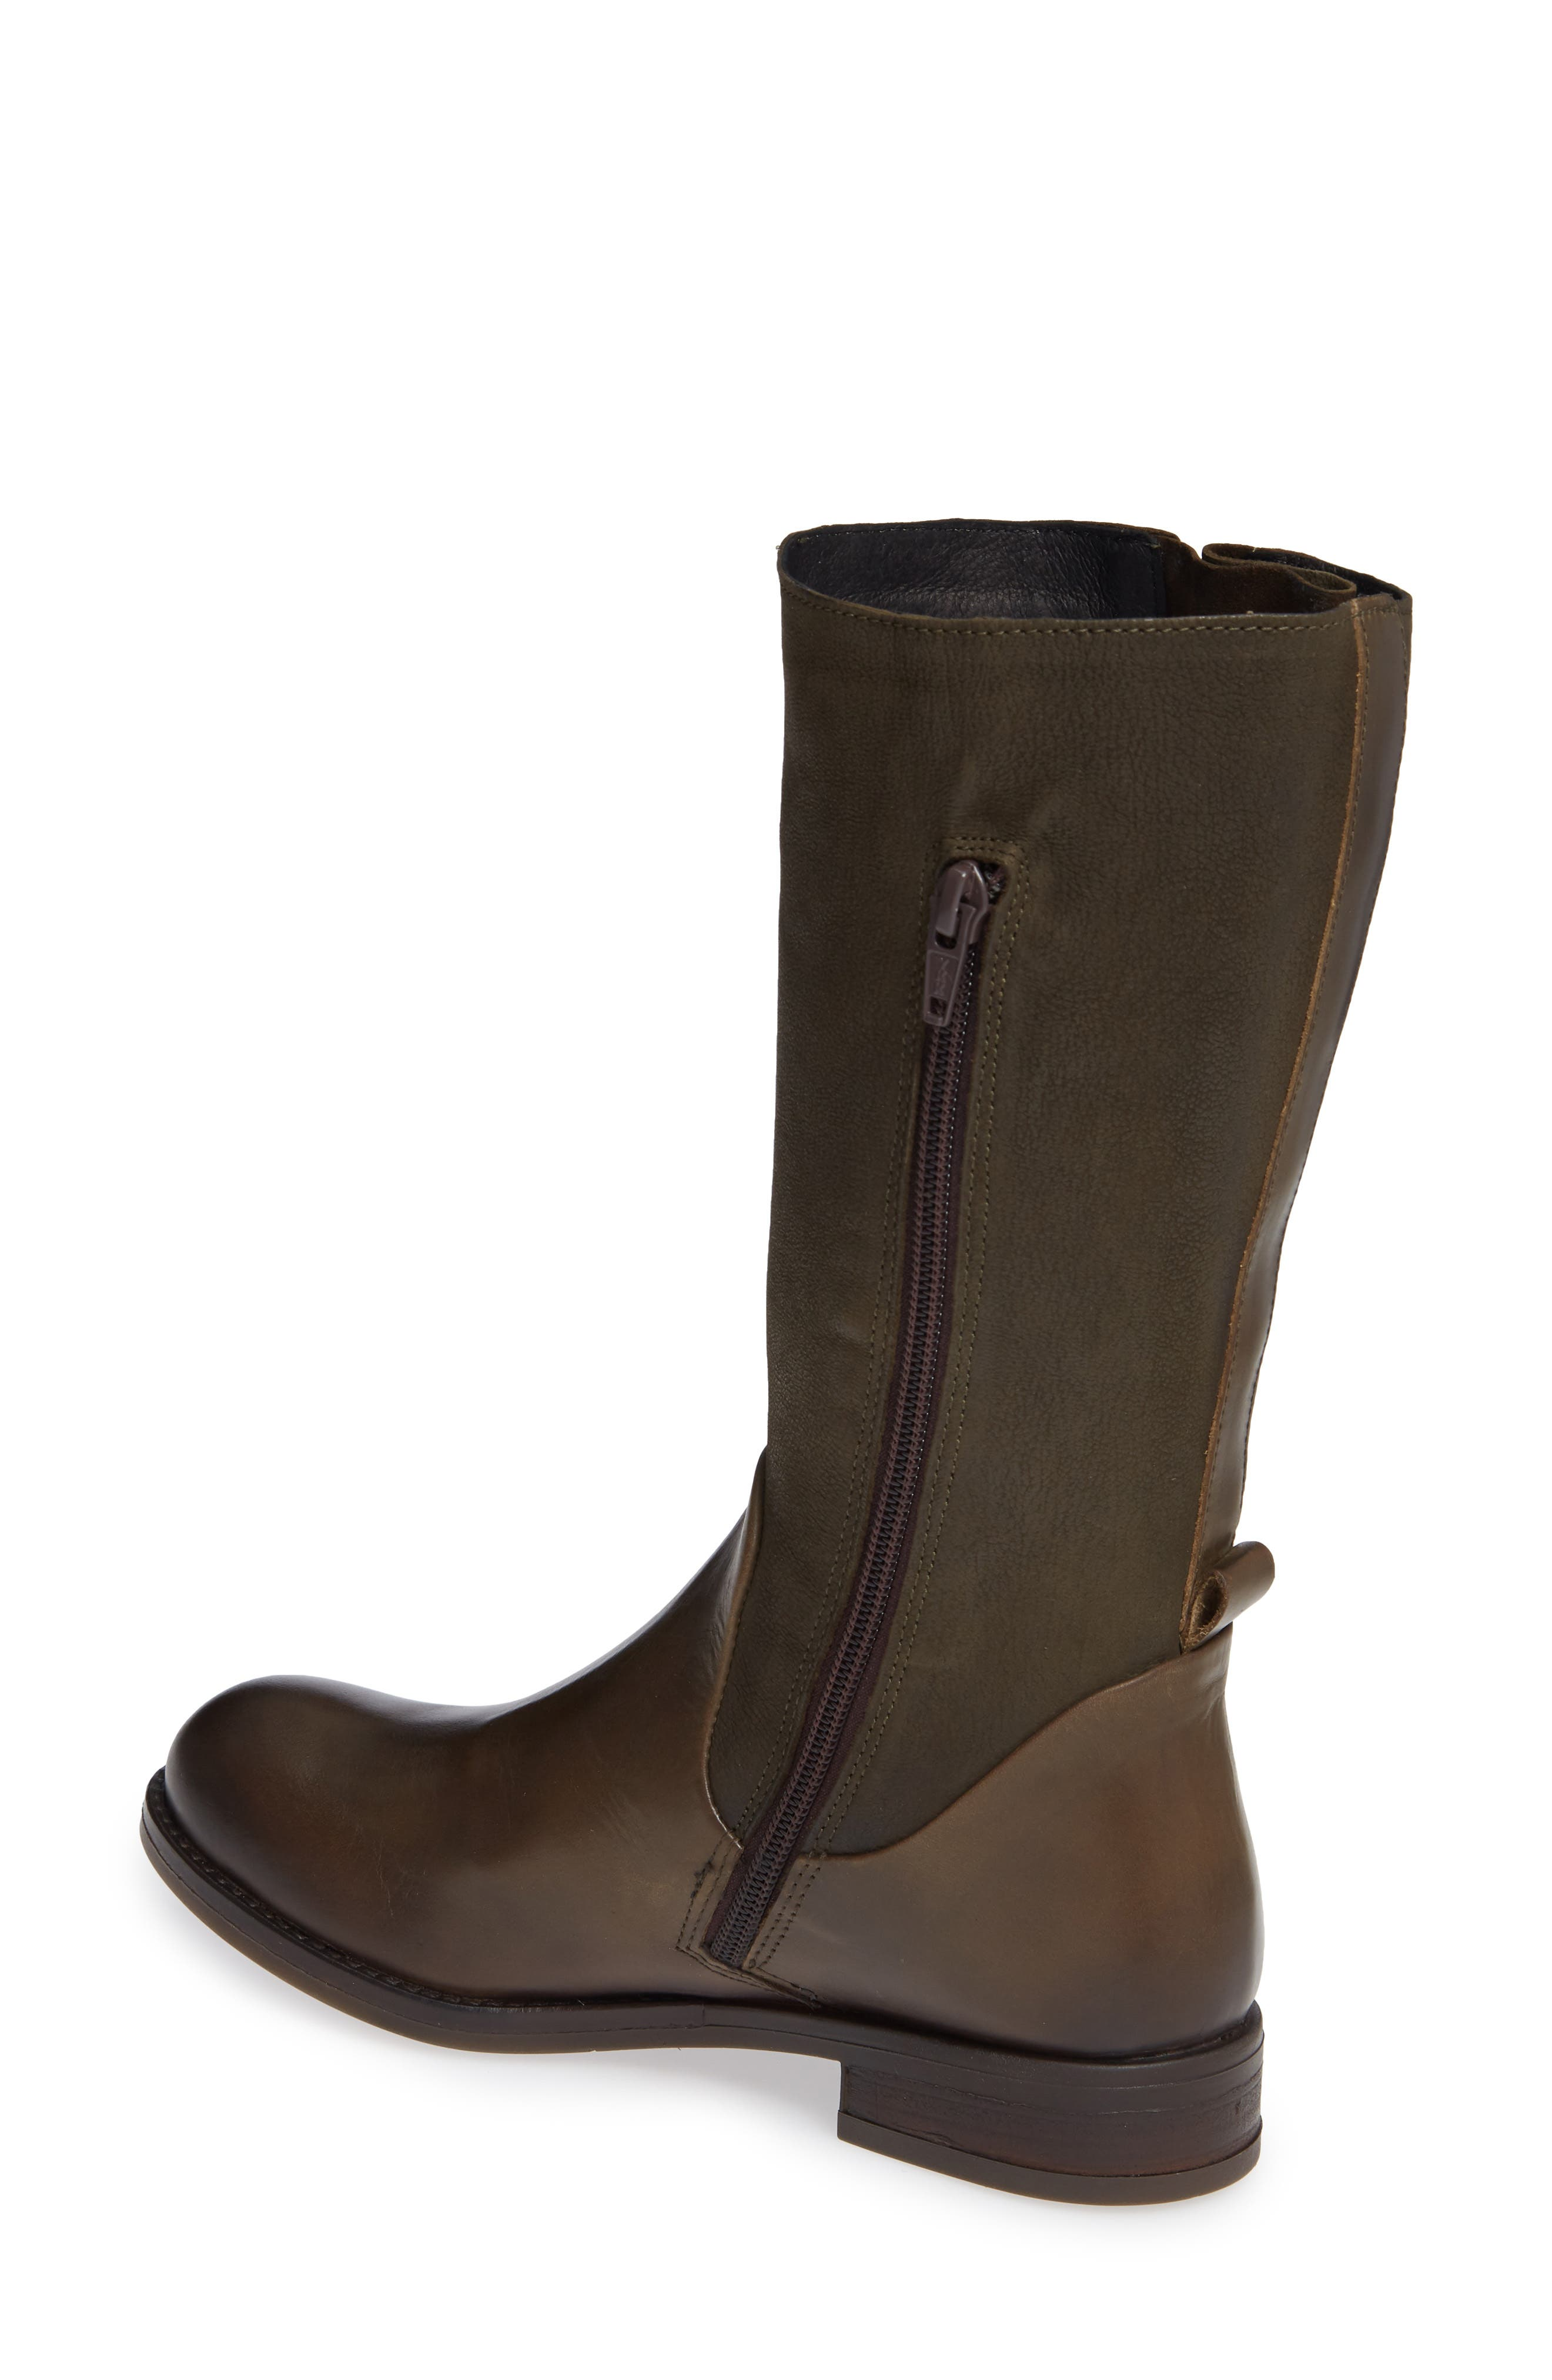 Aedi Boot,                             Alternate thumbnail 2, color,                             OLIVE/ SEAWEED LEATHER